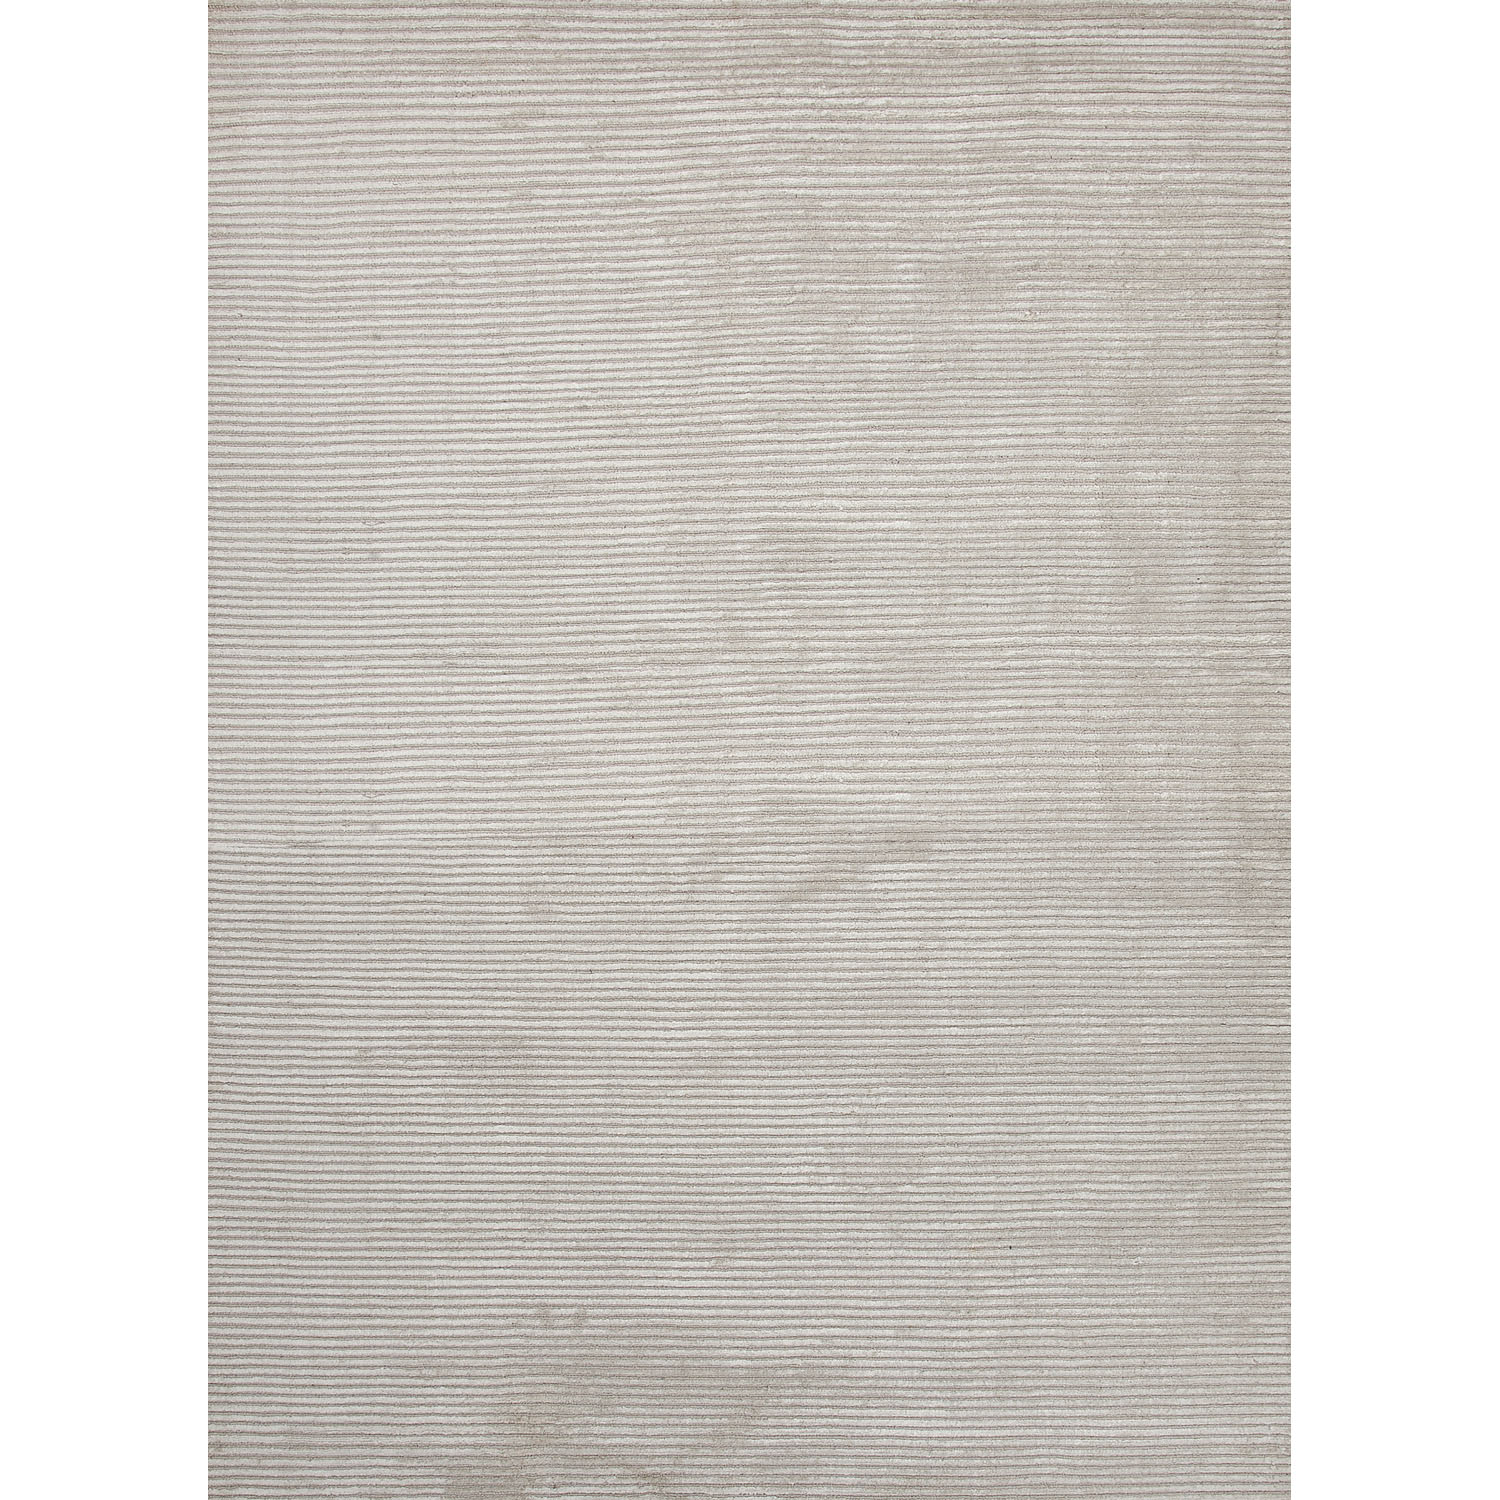 Luxury Stripes Pattern Ivory/White Wool and Art Silk Area Rug (8x10)